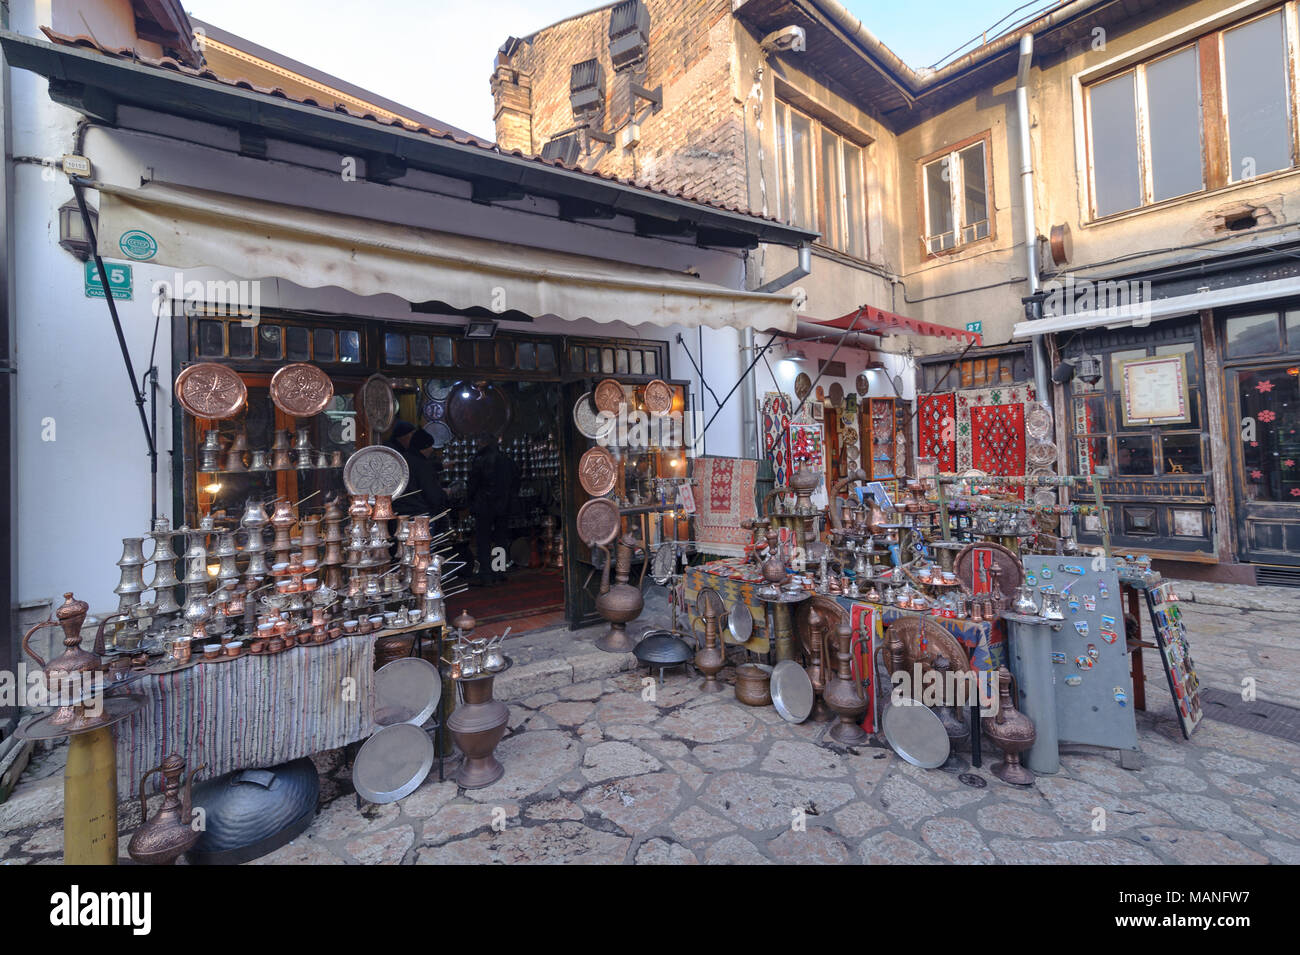 SARAJEVO, BOSNIA - JAN 26, 2018: Open Street touristic market in the old Town, Sarajevo in Bosnia-herzegovina. Old Style handmade copper products are very famous. - Stock Image